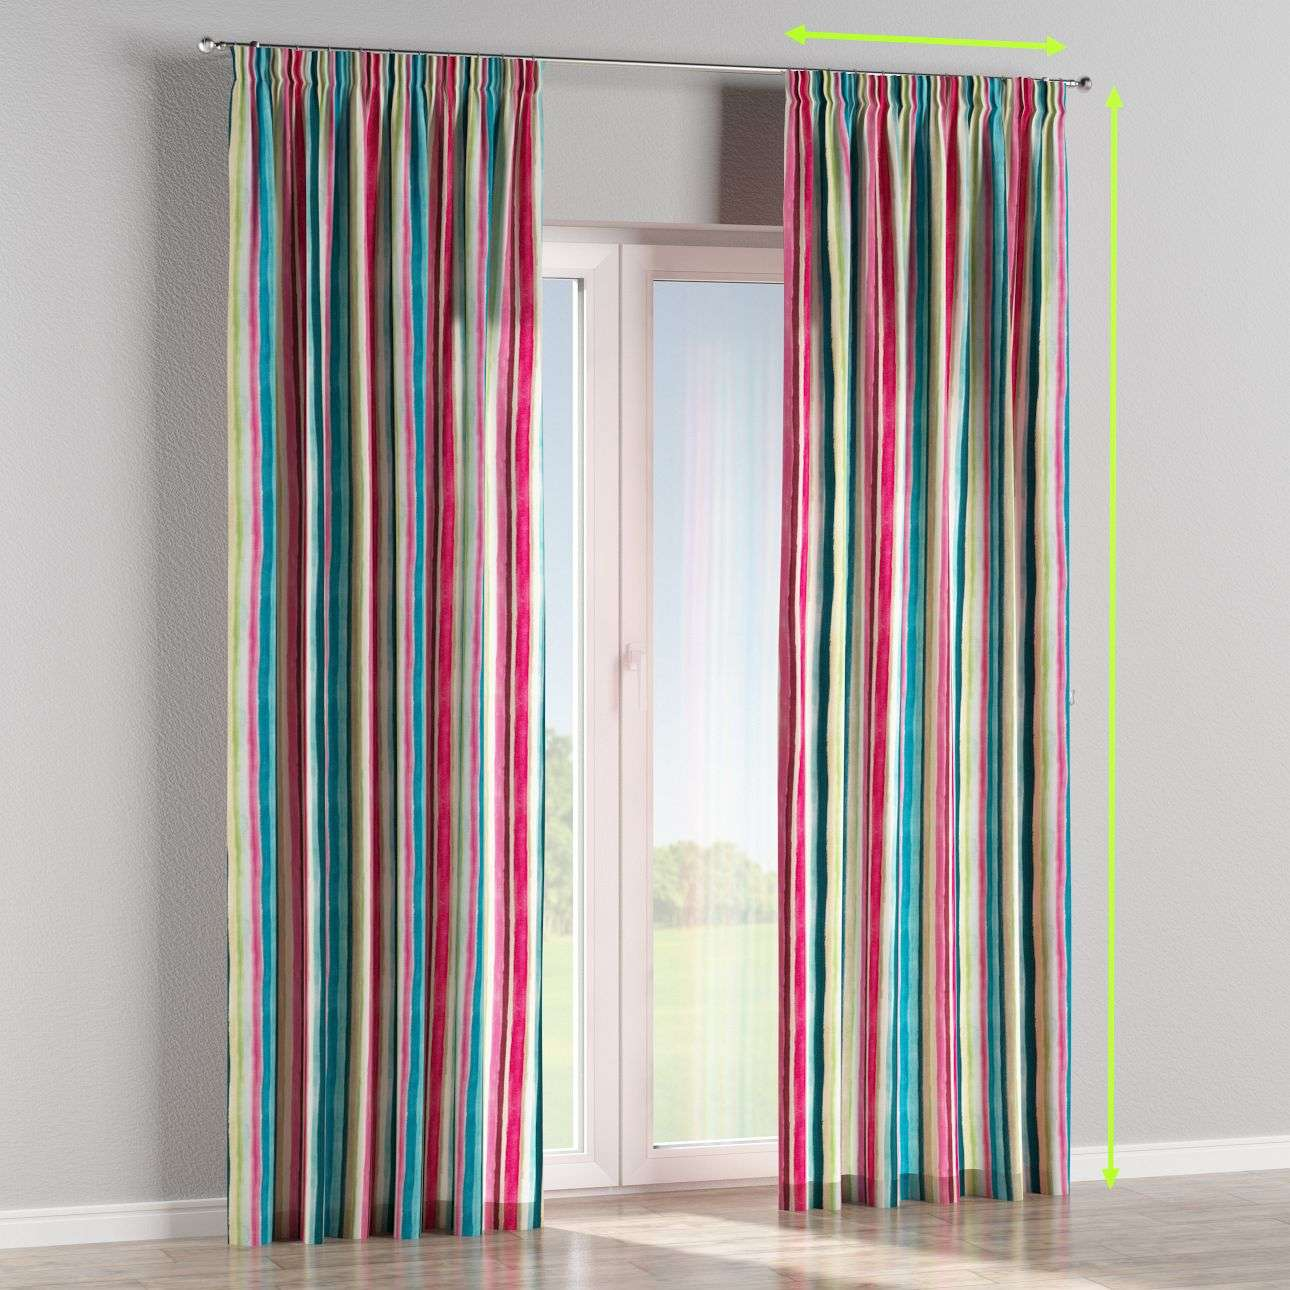 Pencil pleat lined curtains in collection Monet, fabric: 140-09